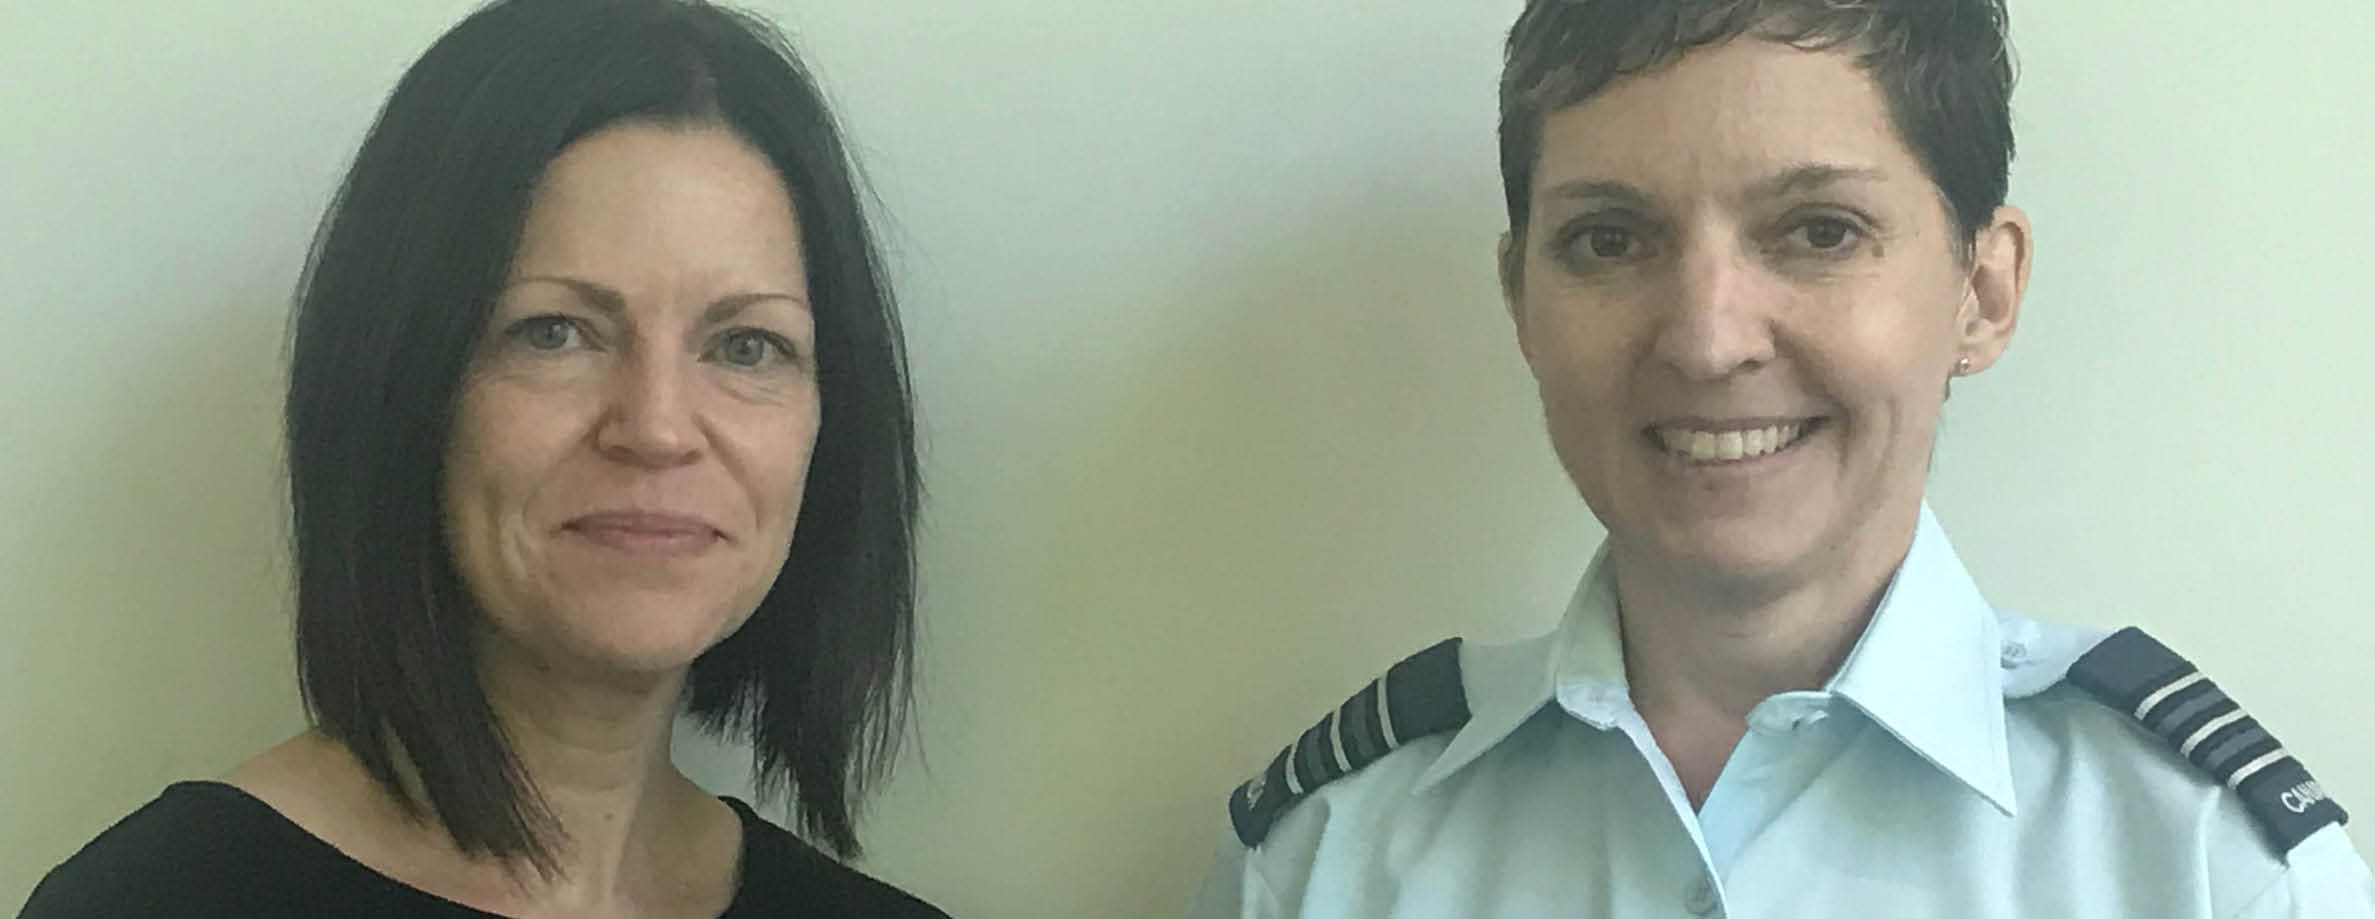 Resilience and Well-Being Q&A with LCol Suzanne Bailey and Marie-Lucie Bédard of the Canadian Armed Forces